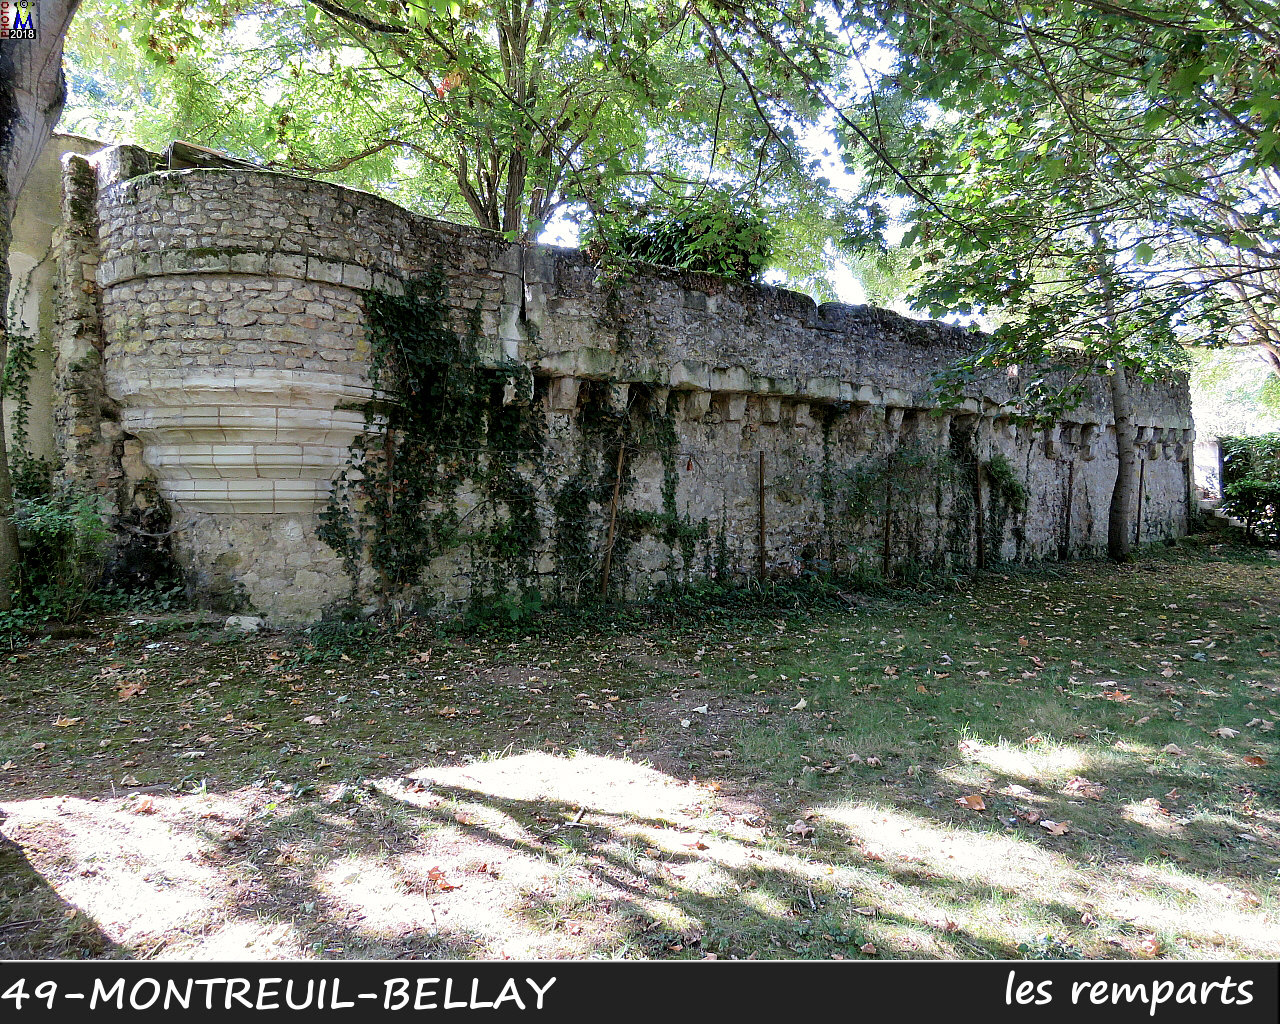 49MONTREUIL-BELLAY_remparts_1050.jpg